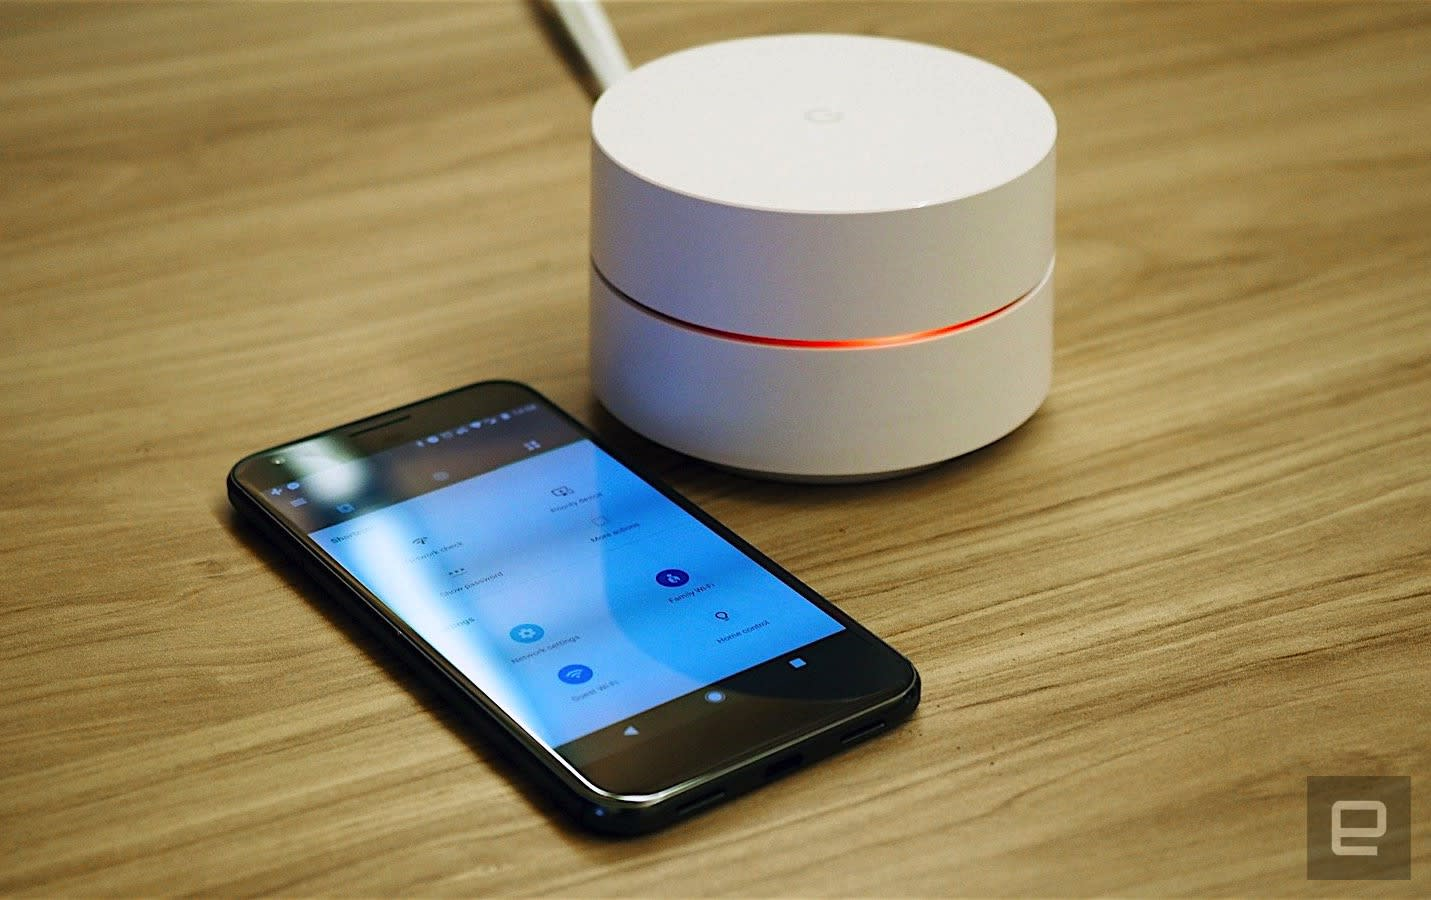 Google WiFi adds site blocking to its family-friendly features